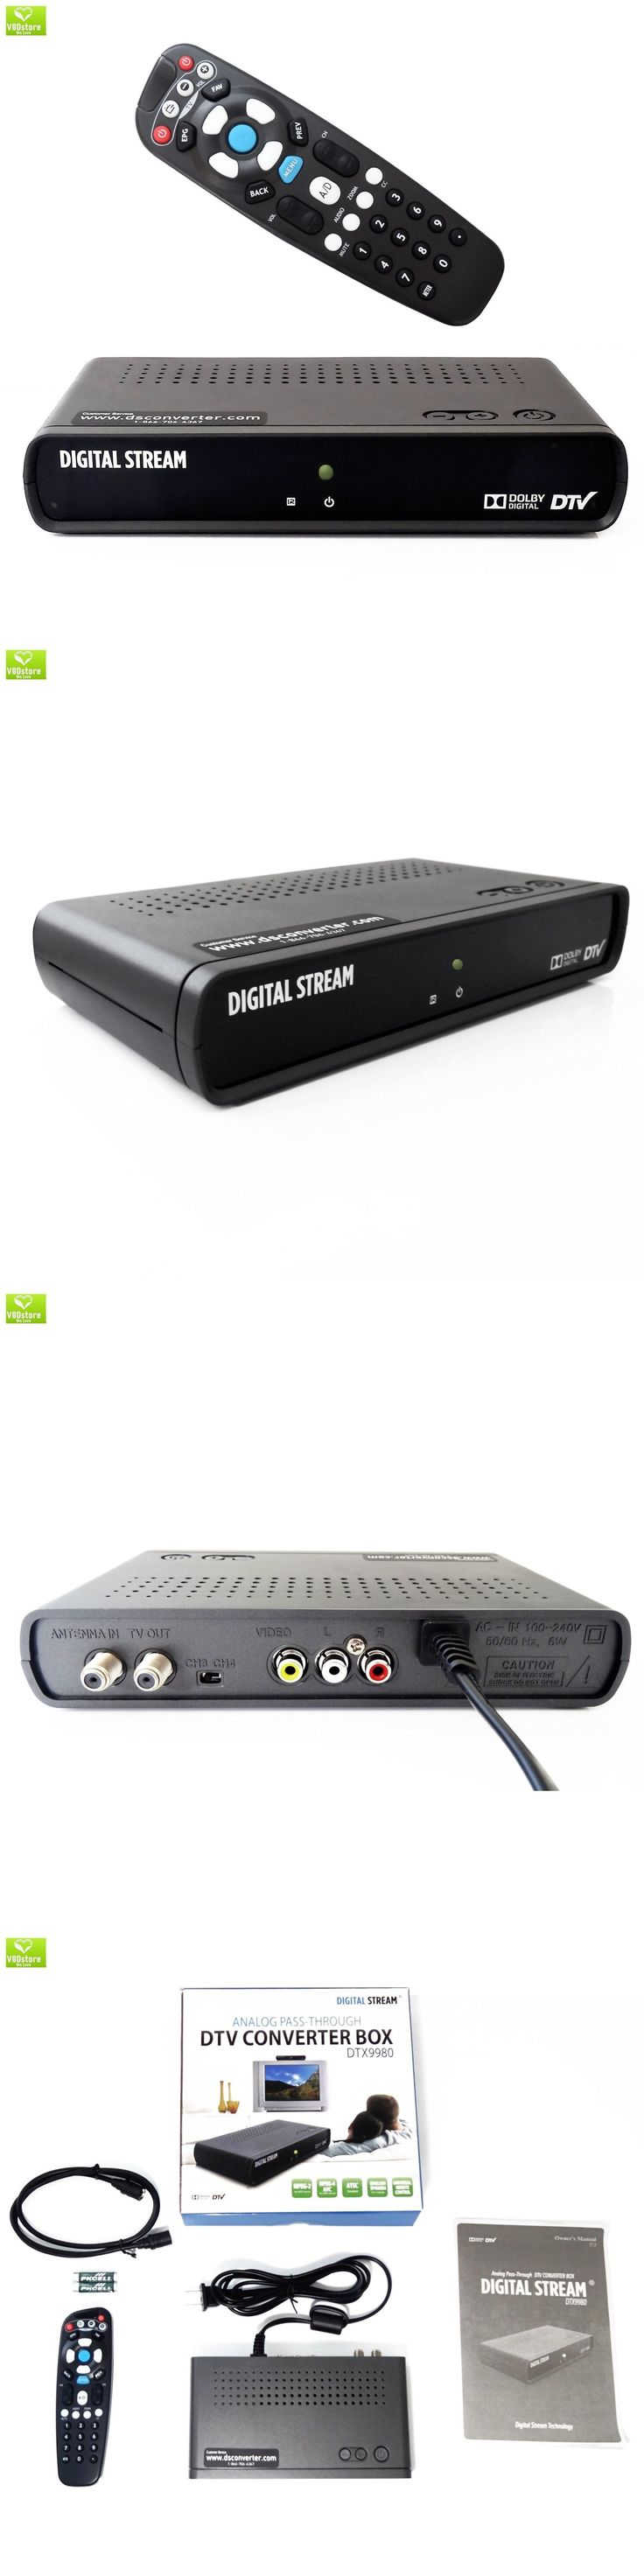 Cable TV Boxes: Digital Stream Analog Pass-Through Dtv Converter Box, Full Atsc, Dolby, Hdmi Con -> BUY IT NOW ONLY: $38.74 on eBay!